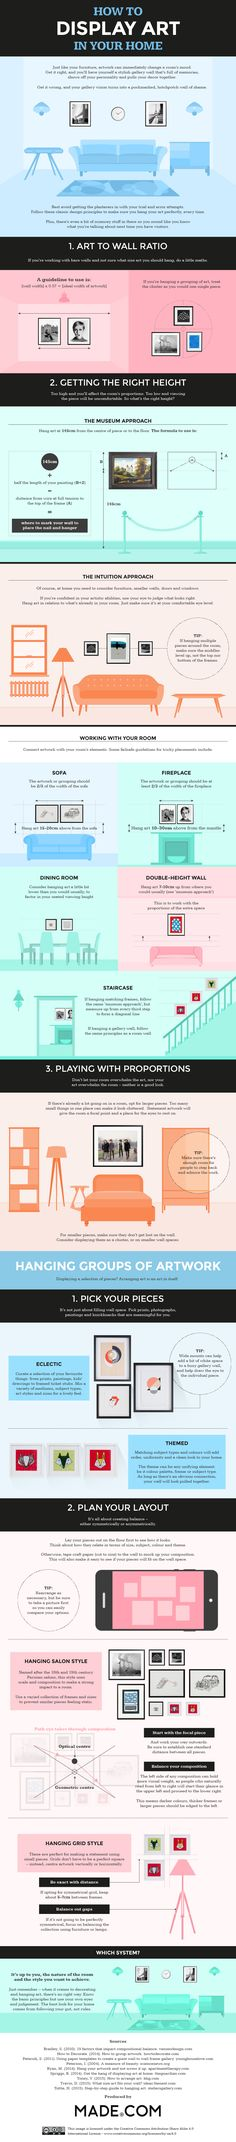 How to Display Art in your Home #infographic #HowTo #Home #Art #HomeImprovement #Decor